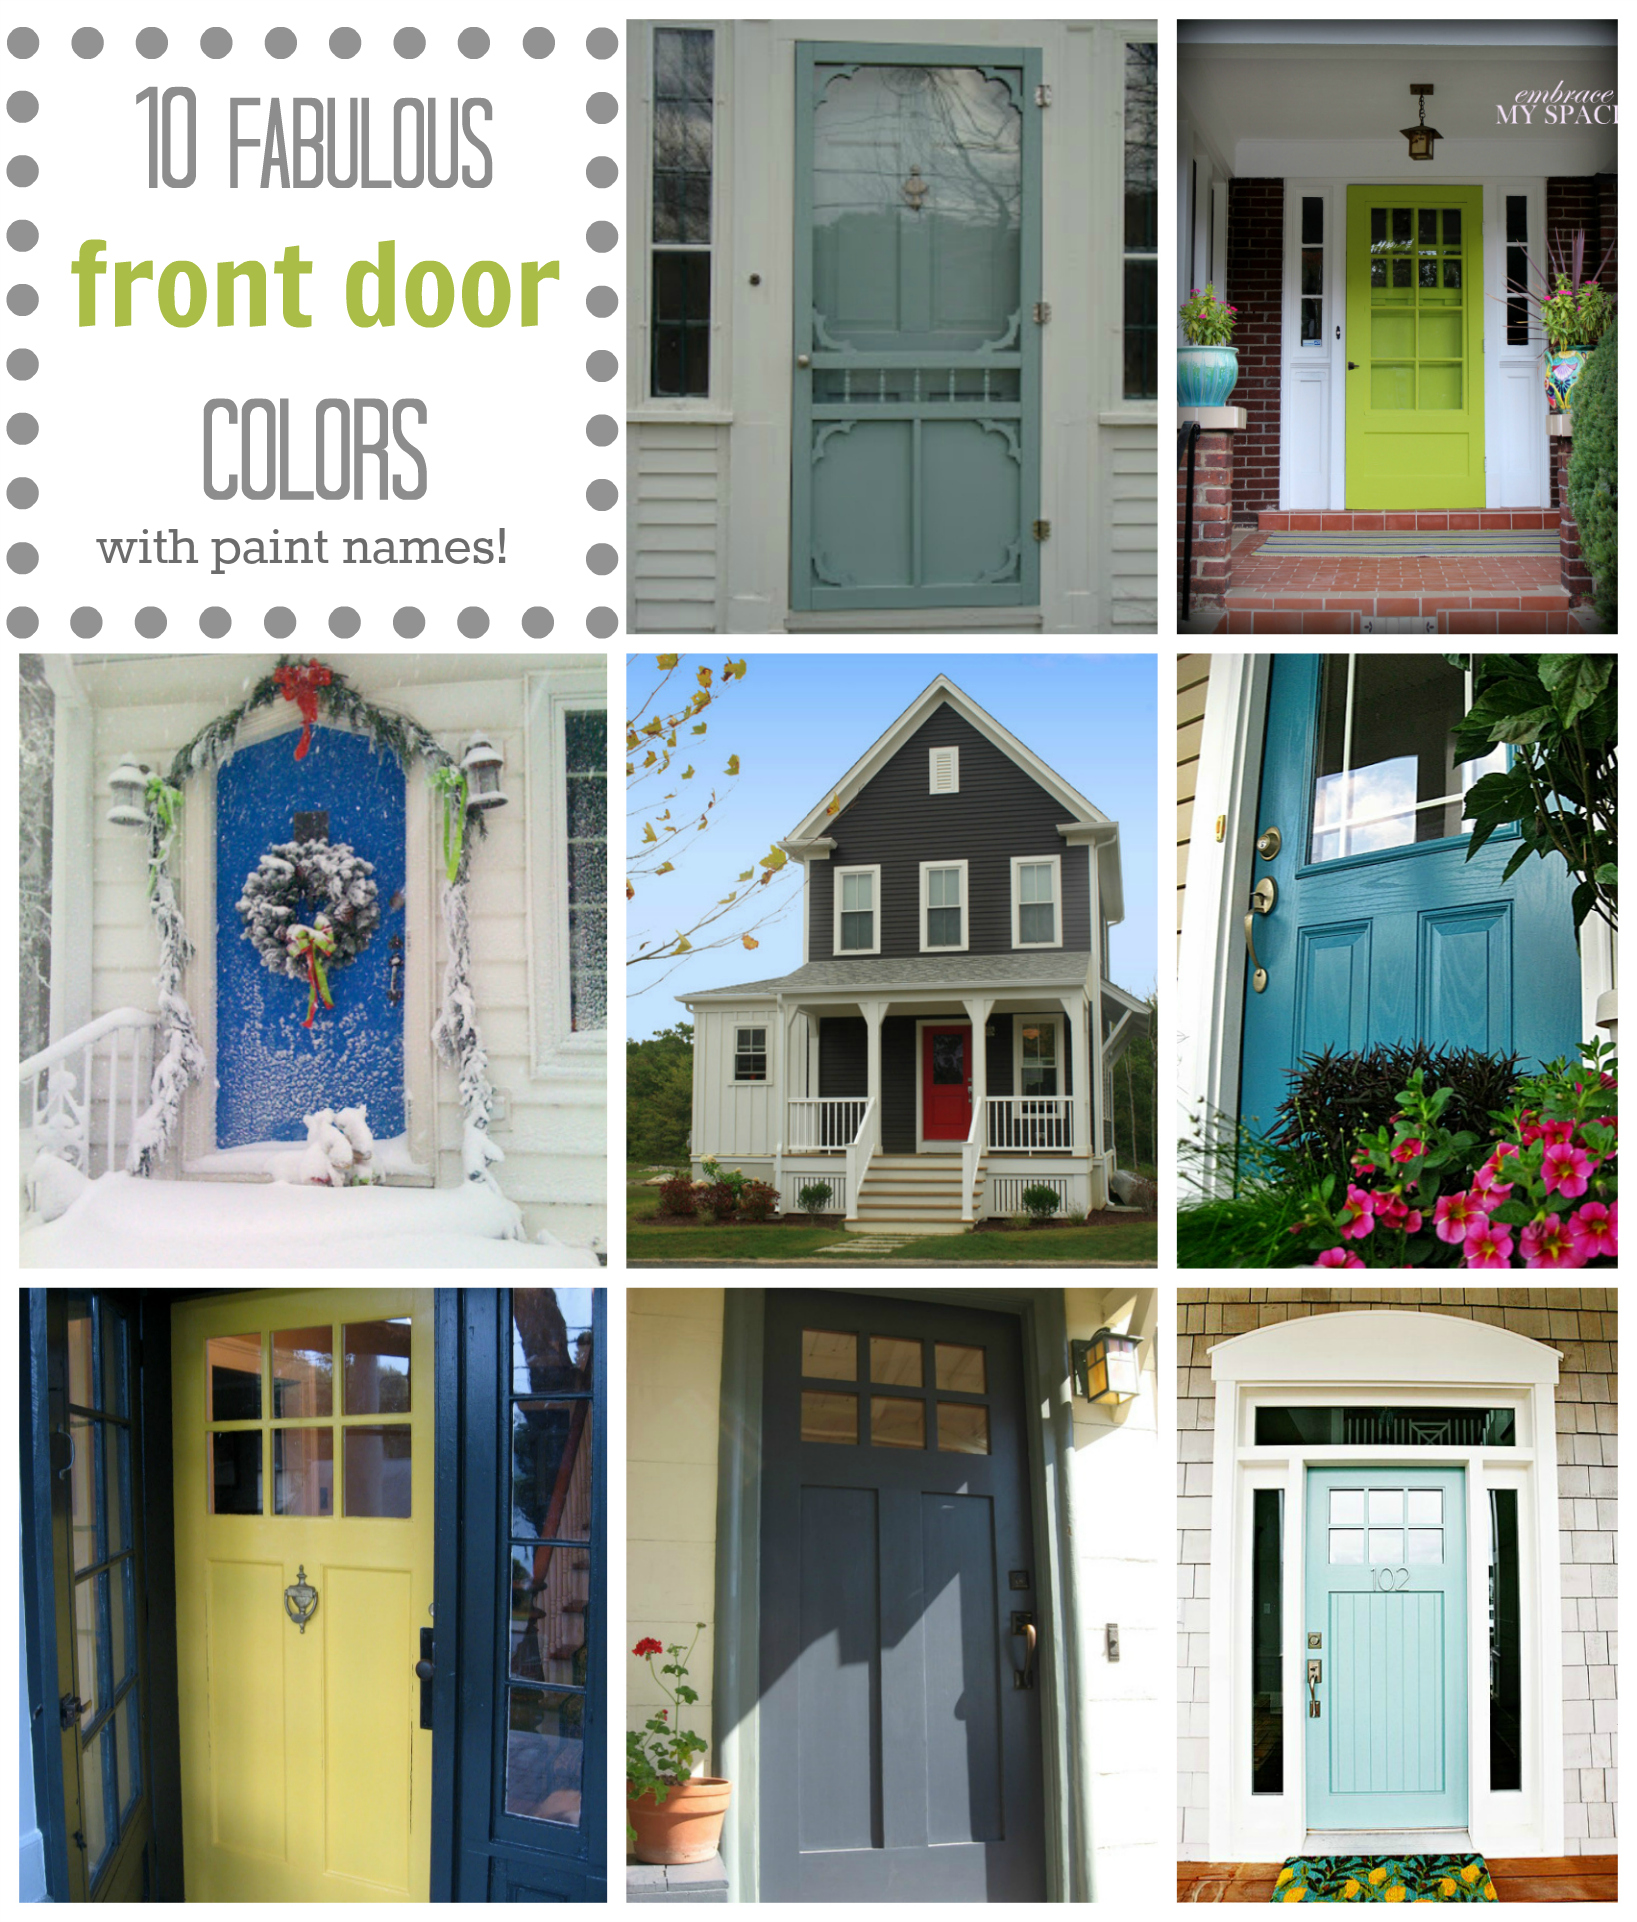 Front door color 10 fabulous front door colors their What front door colors mean